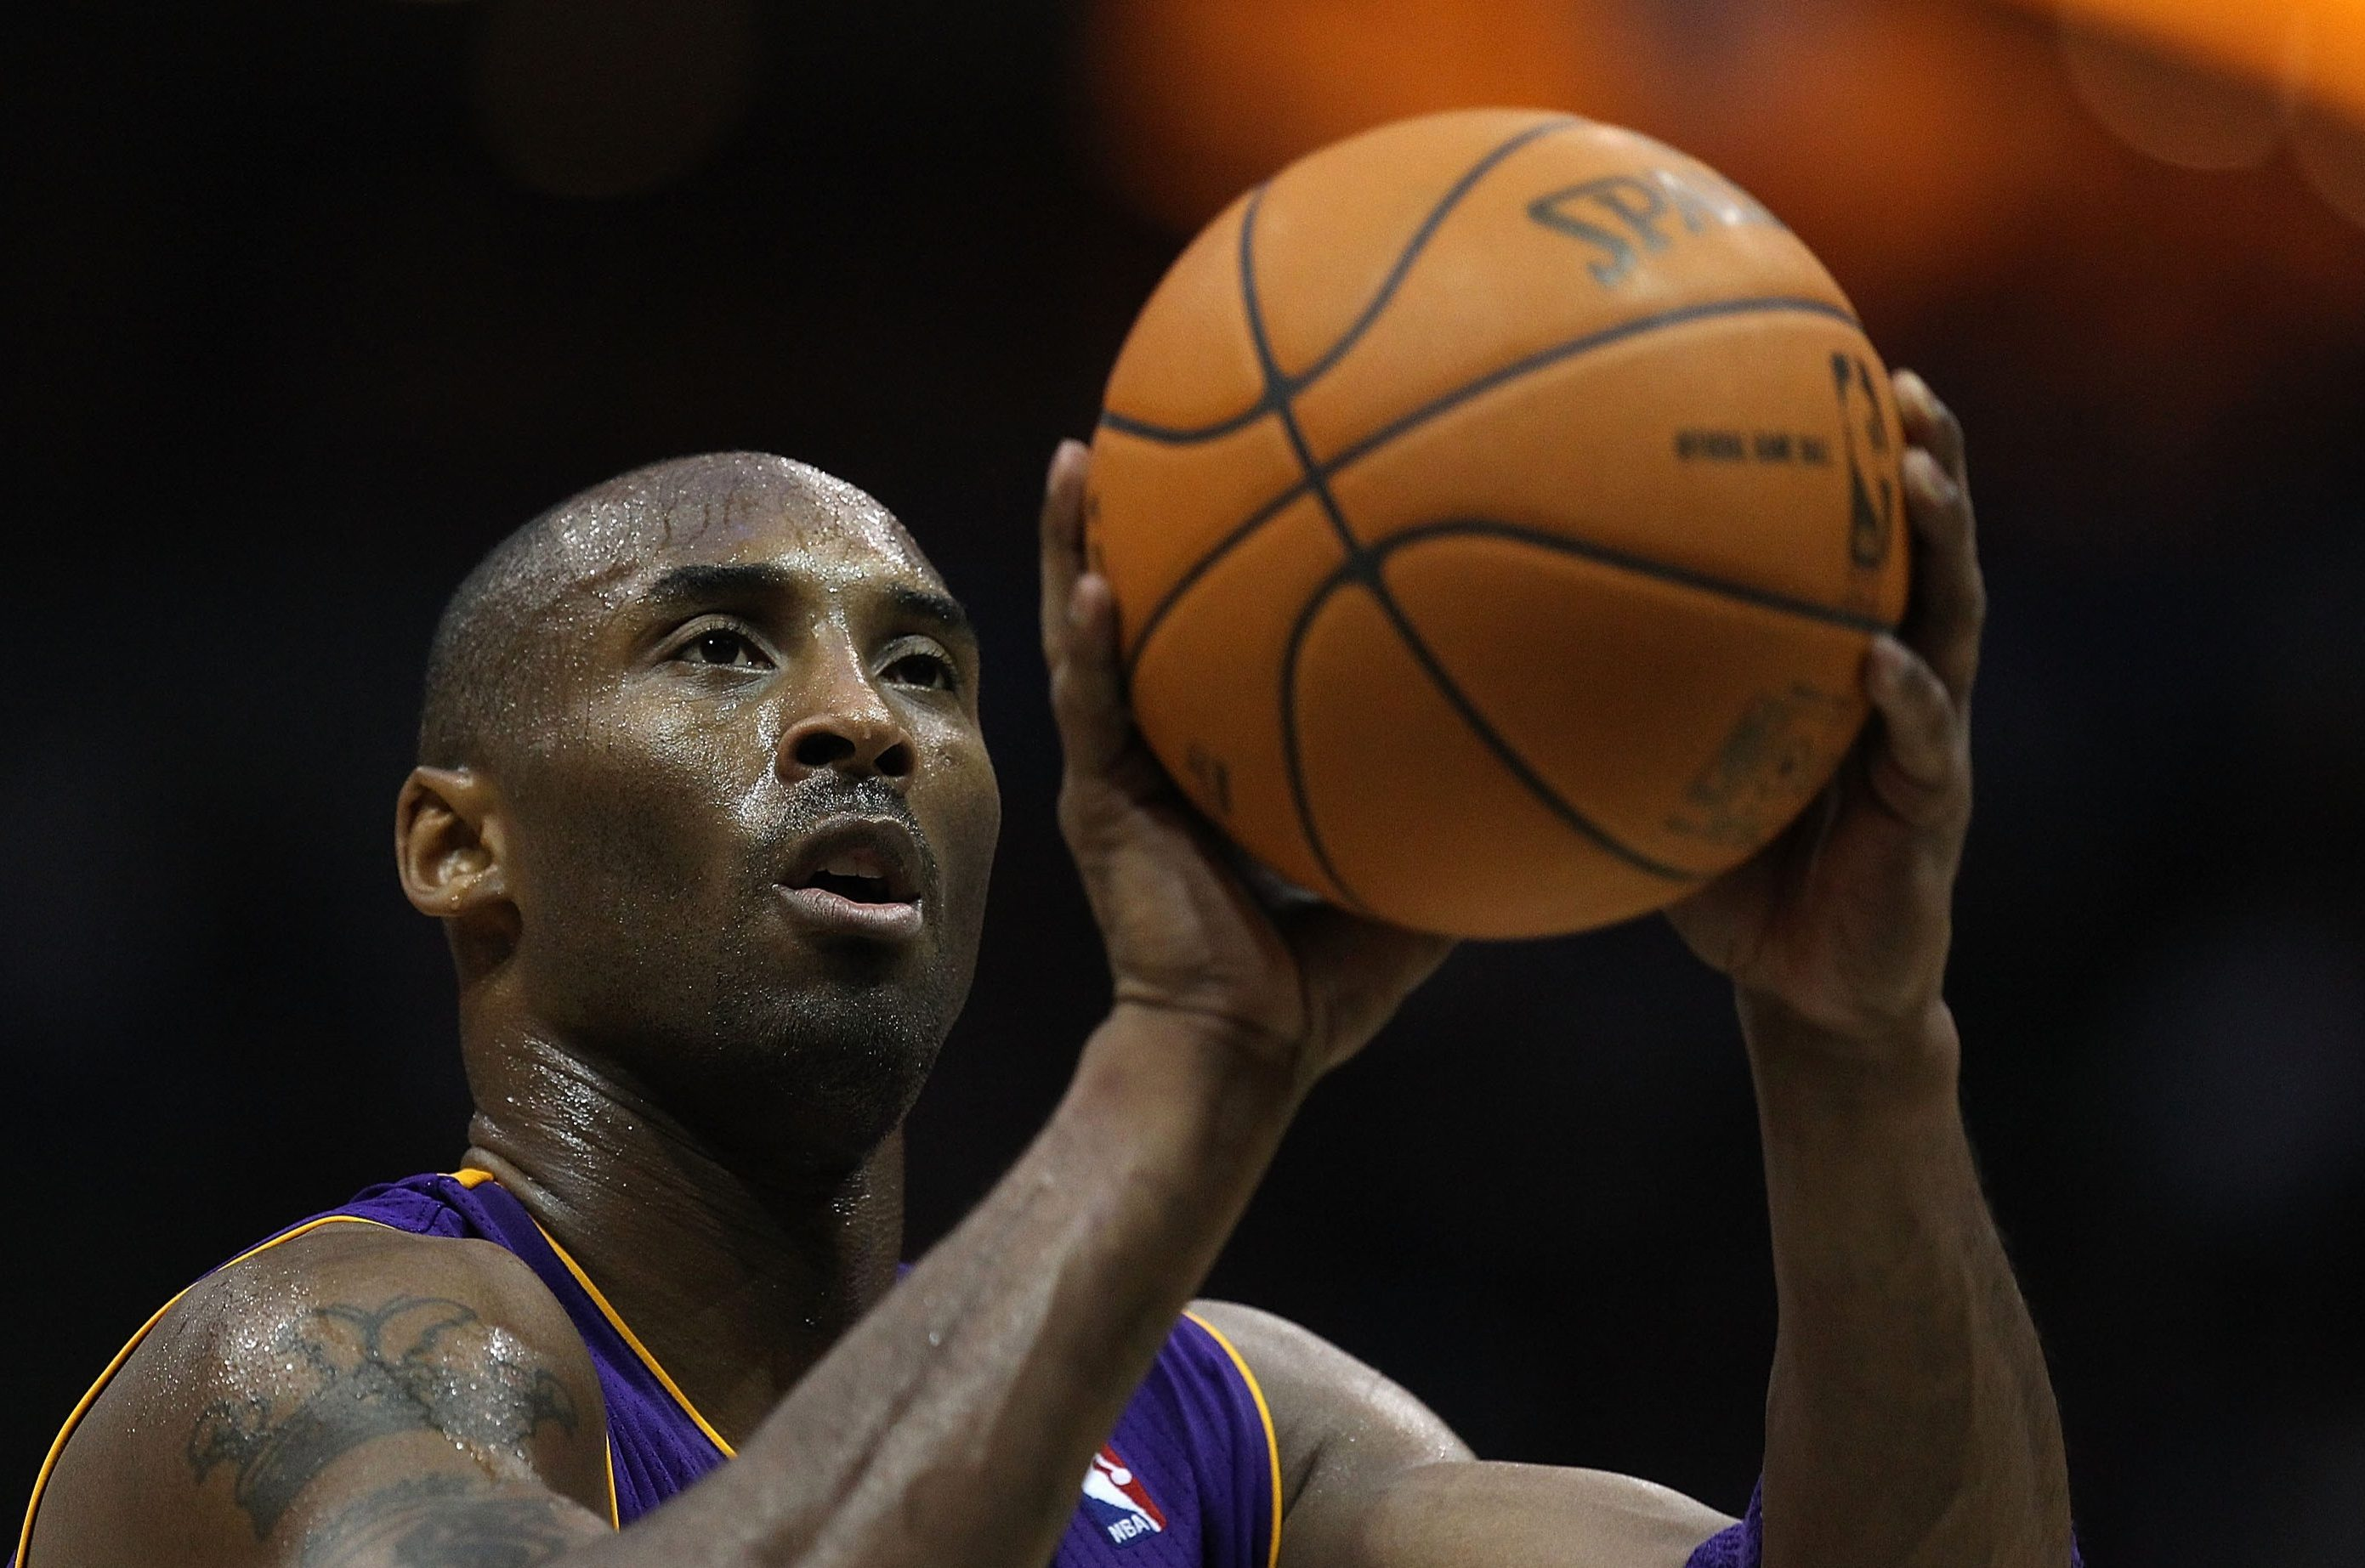 Kobe was an 18-time All-Star and five-time NBA champion